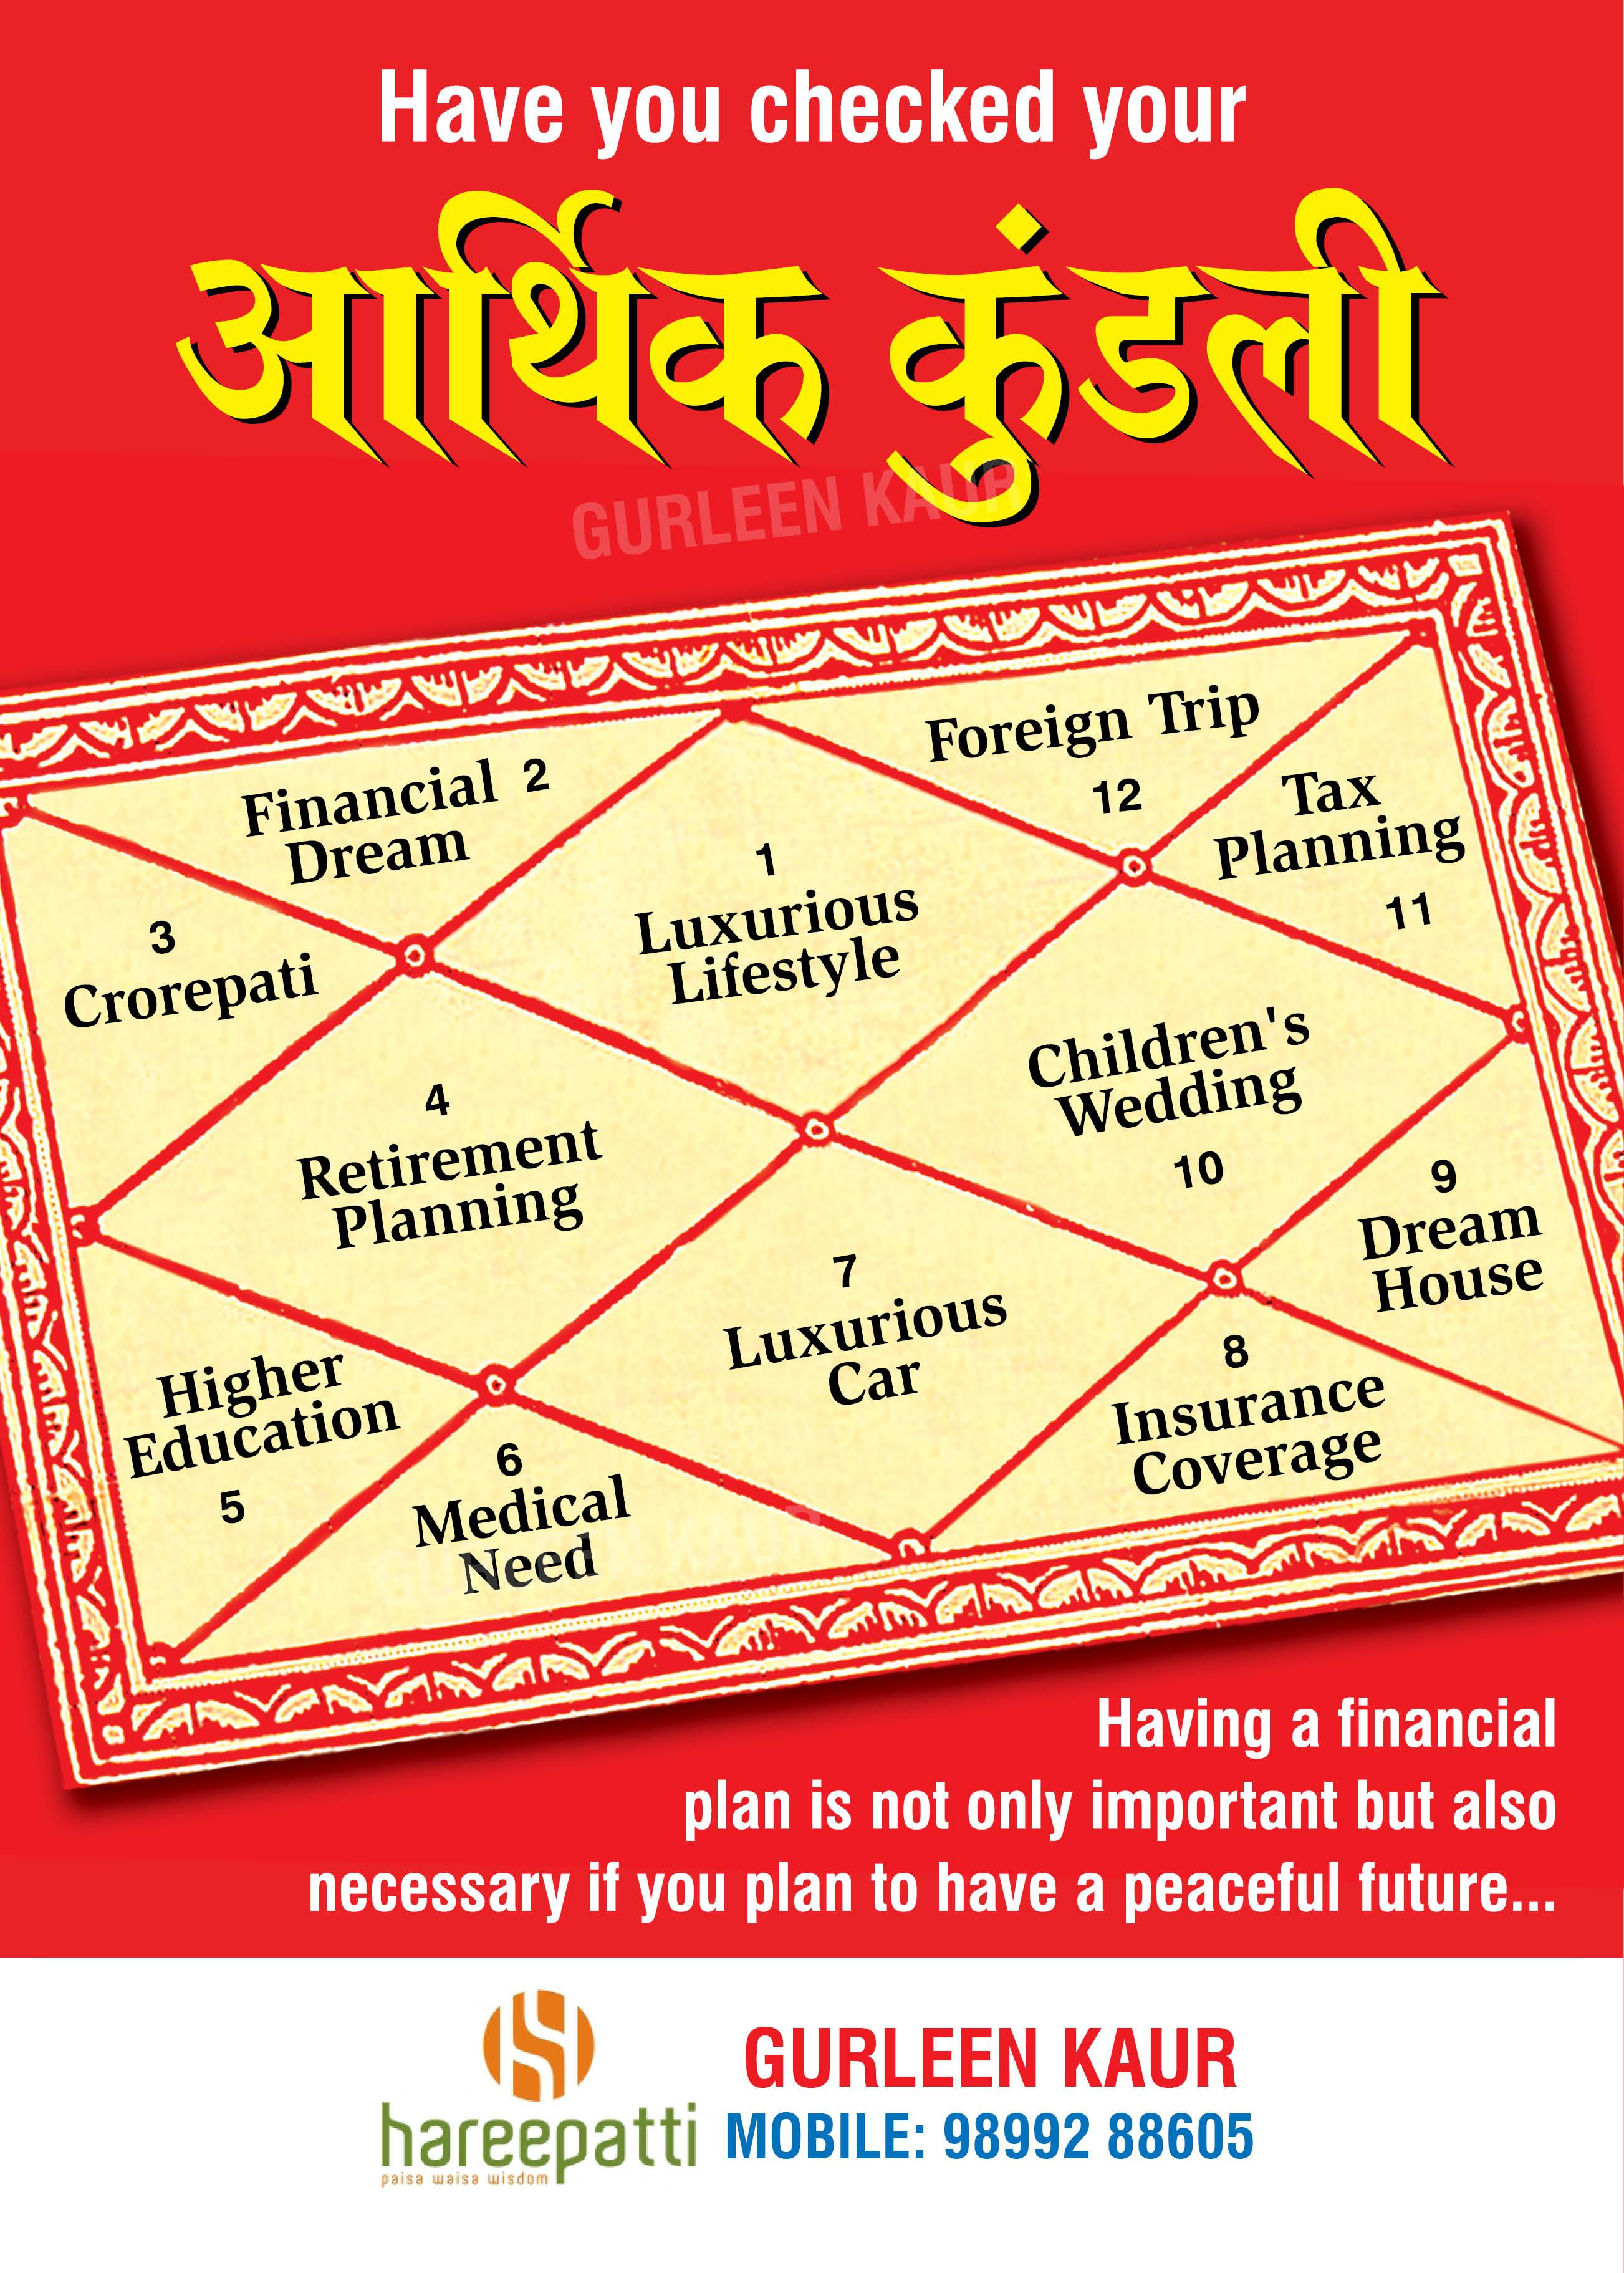 financial planning 05 09 14 hareepatti